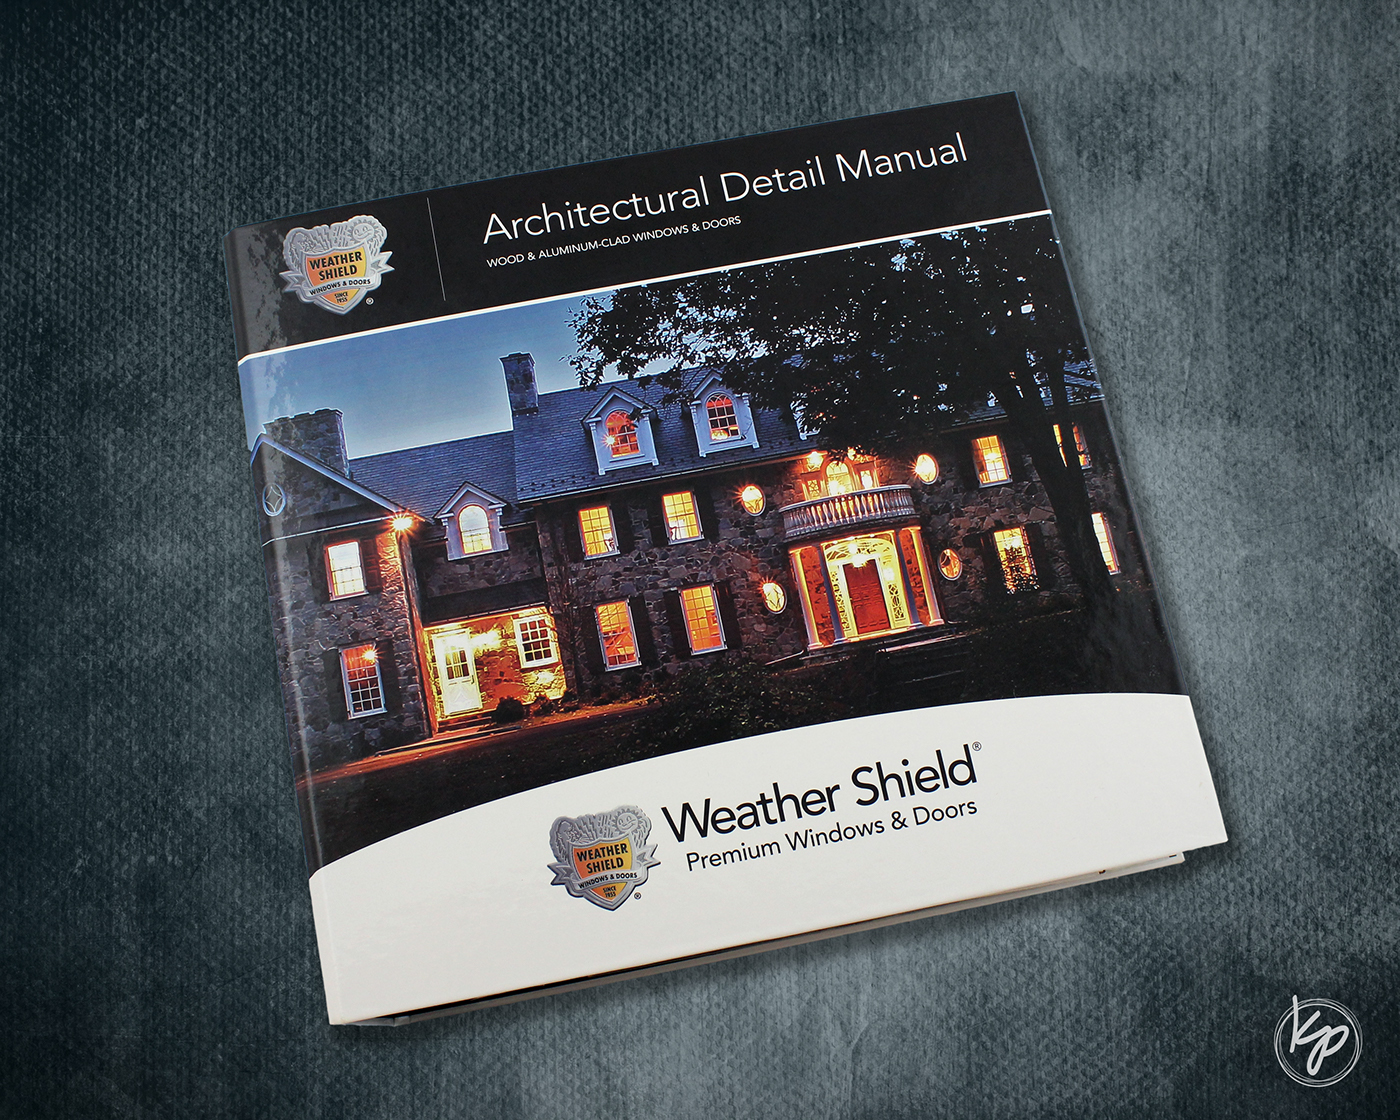 The Architectural Detail Manuals are provides information on each of the  Weather Shield product lines and resides in the office of an Architect.